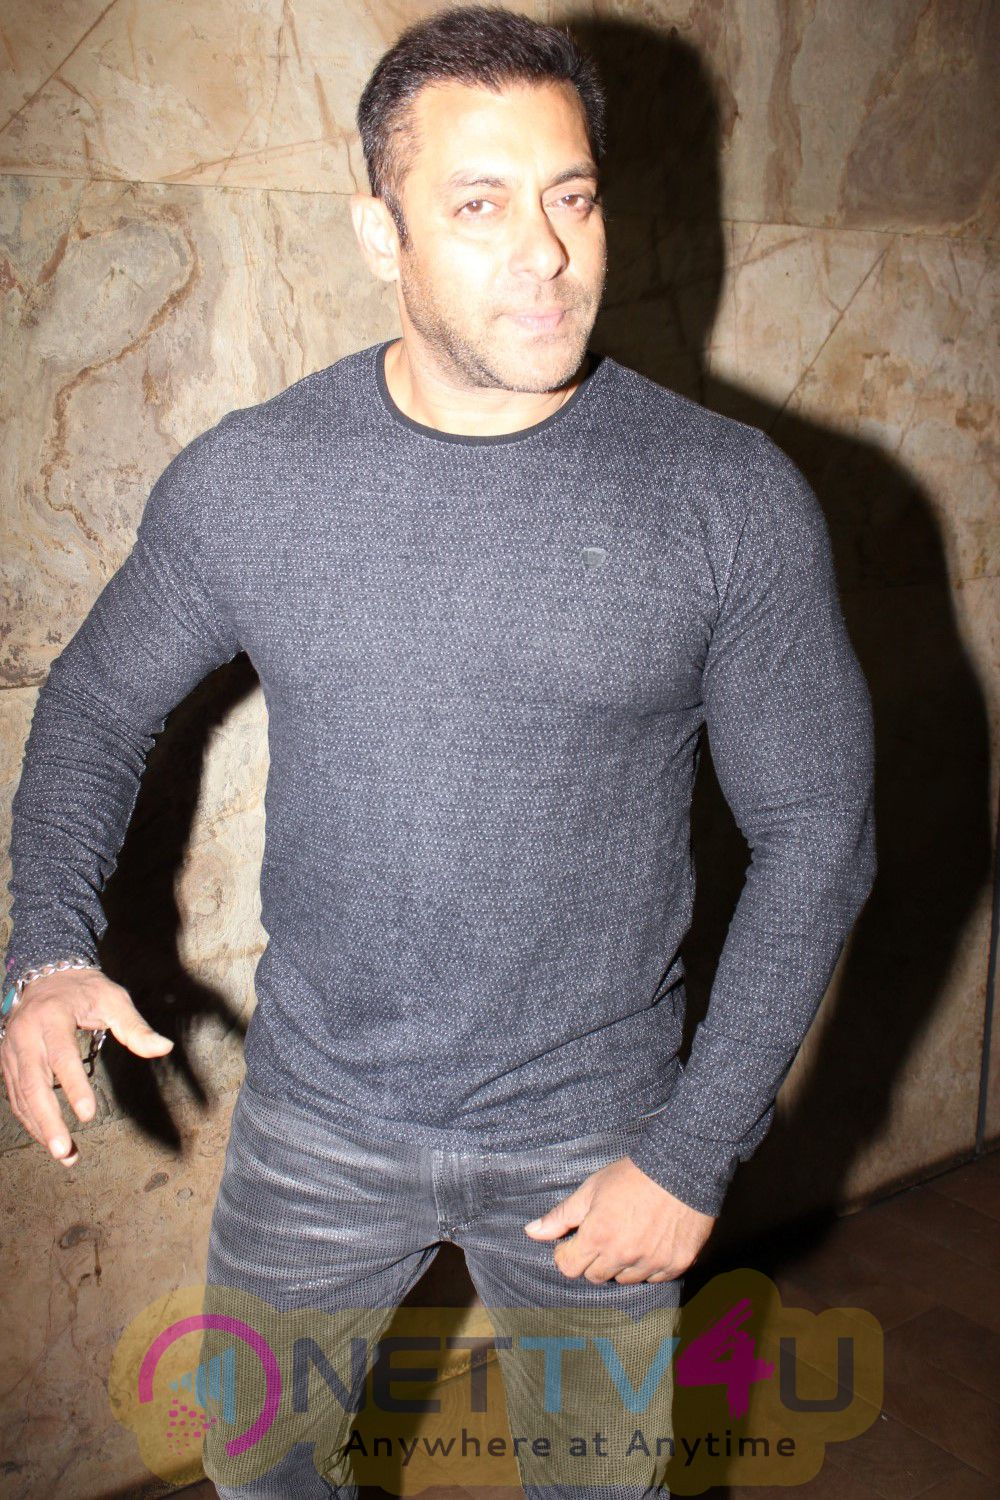 Photos Of Actors Salman Khan And Sohail Khan During The Special Screening Of Film The Jungle Book In Mumbai